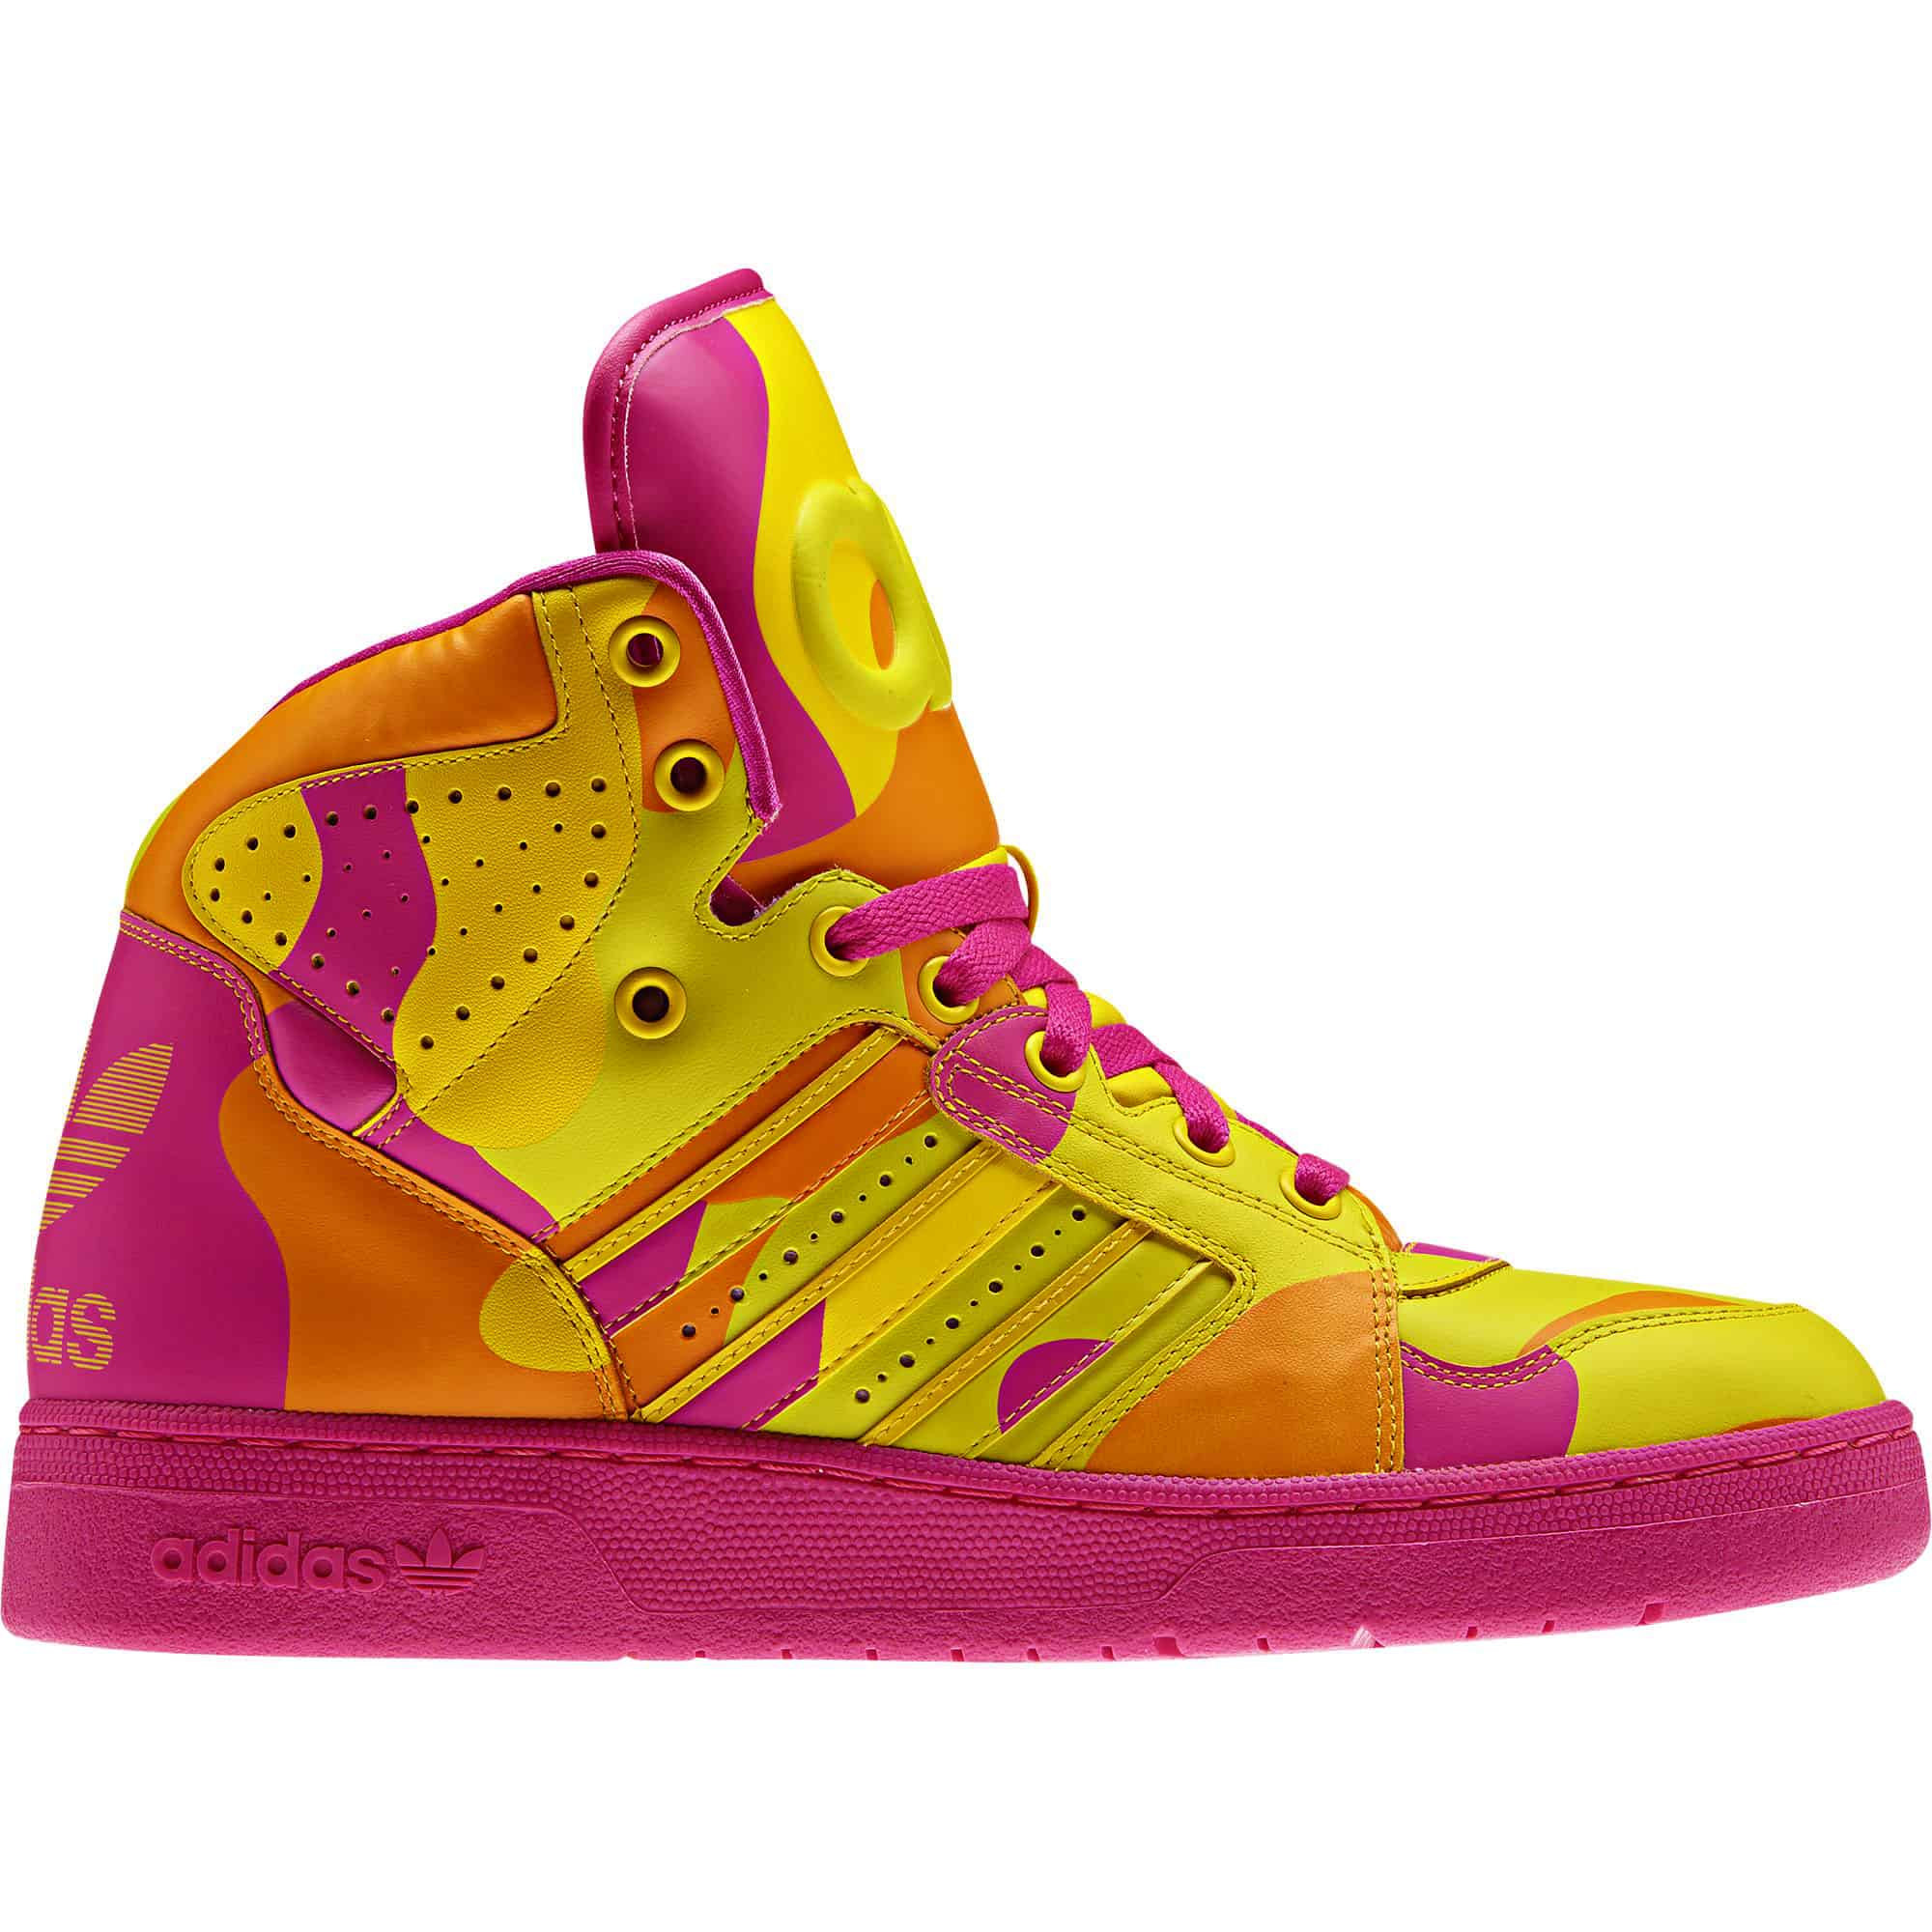 Adidas Mens Jeremy Scott Neon Camo Buy Shoes for Clubbing